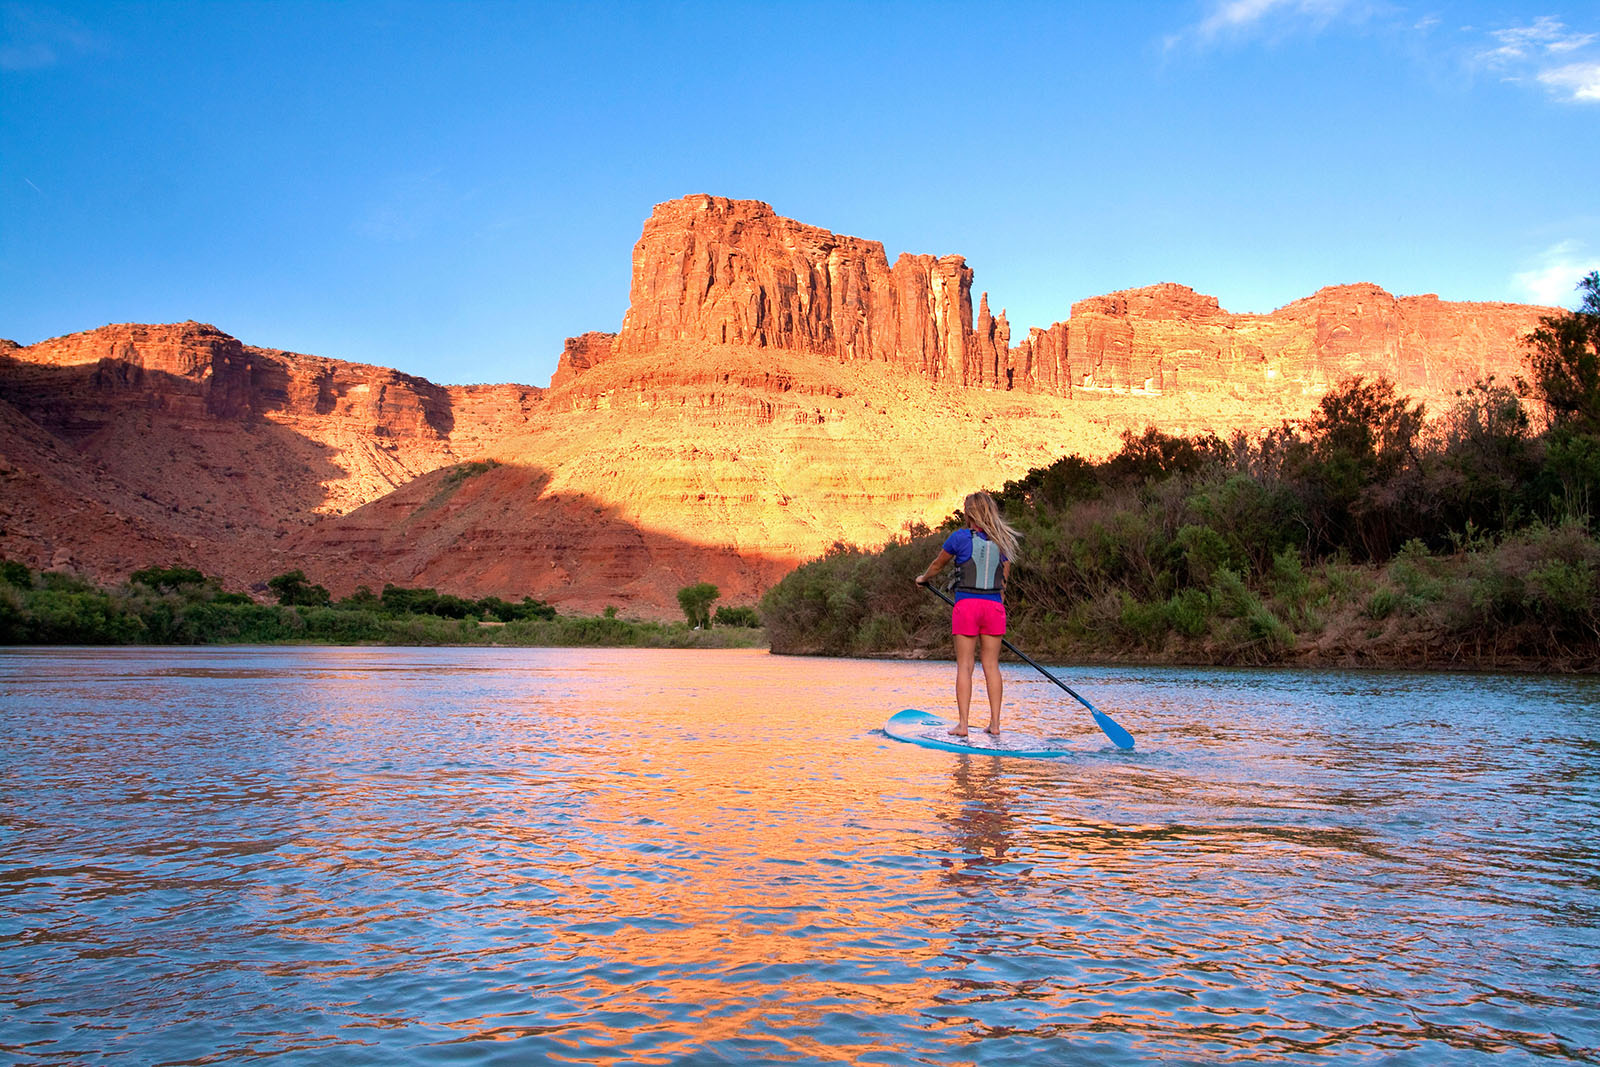 guide to river recreation on the colorado river near moab utah